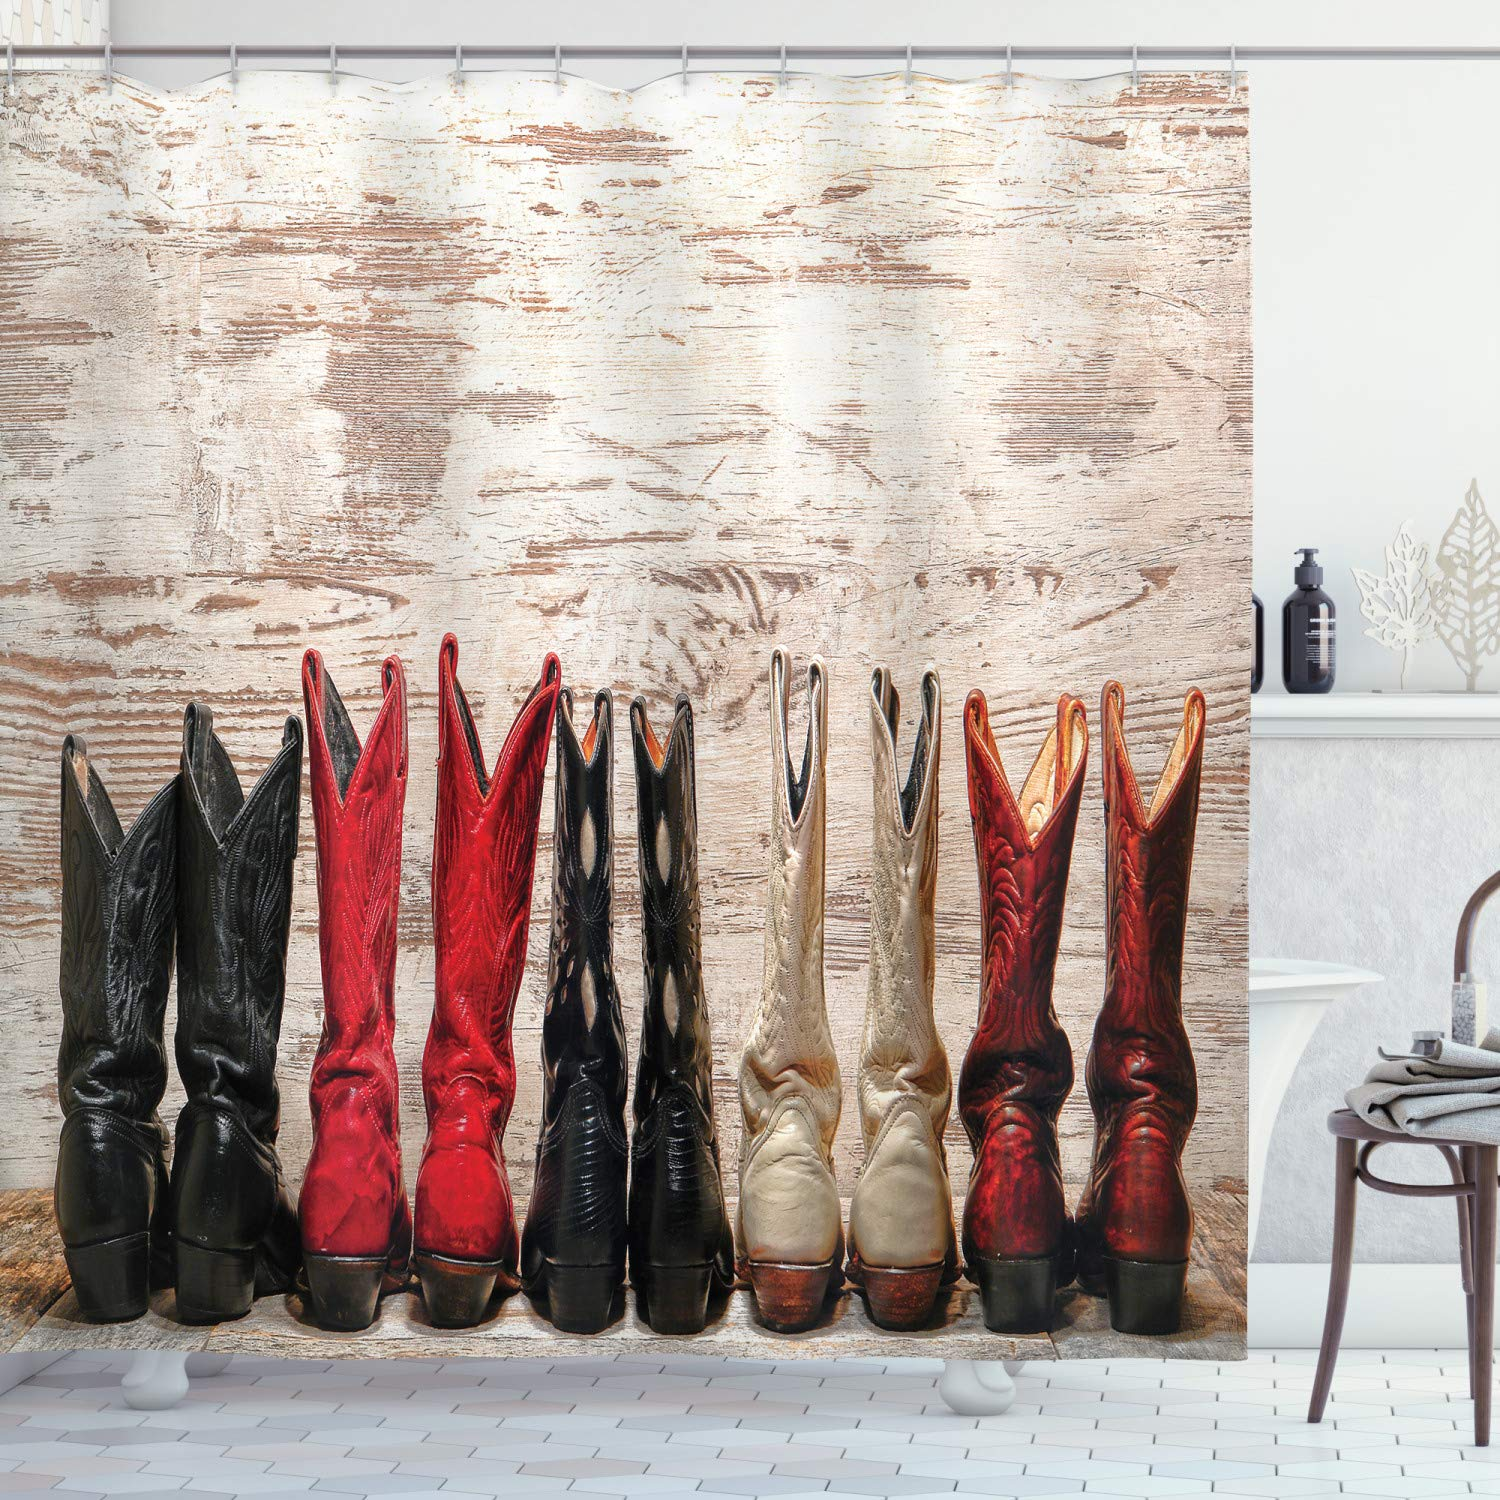 """Ambesonne Western Shower Curtain, American Cowgirl Leather Boots Rustic Wild West Theme Cultural Print, Cloth Fabric Bathroom Decor Set with Hooks, 75"""" Long, Beige Red"""